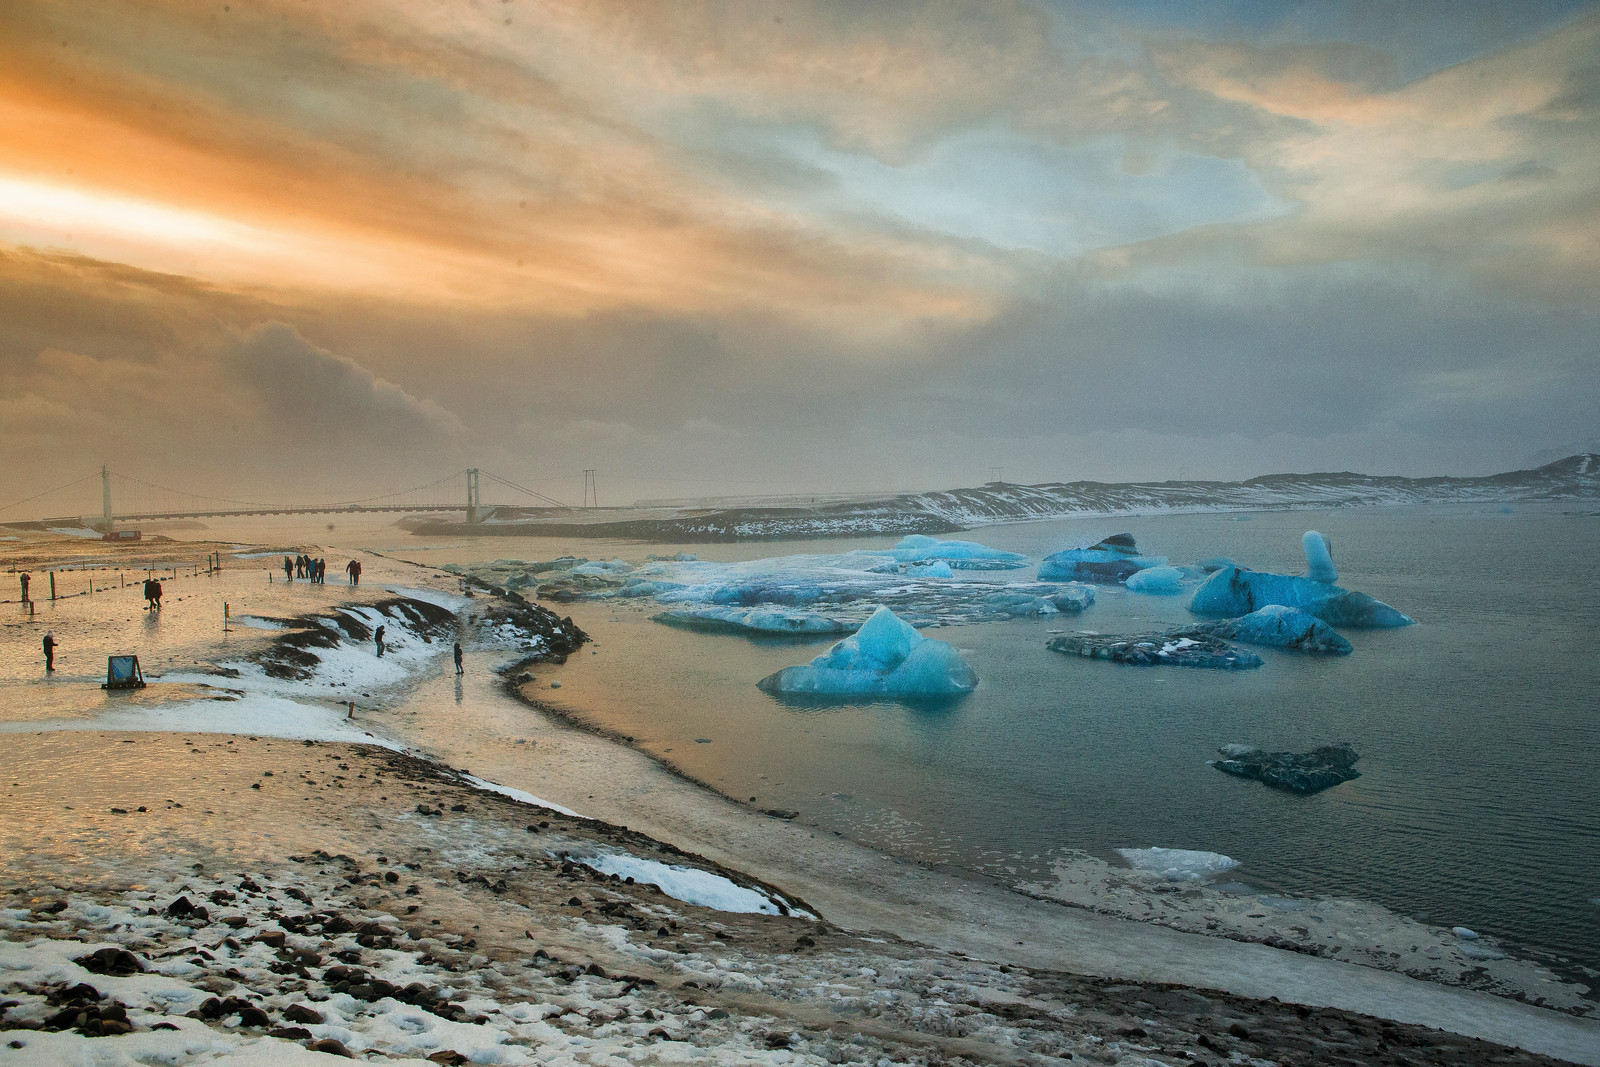 Tourists gather at Jokulsarlon during sunrise in Southern Iceland